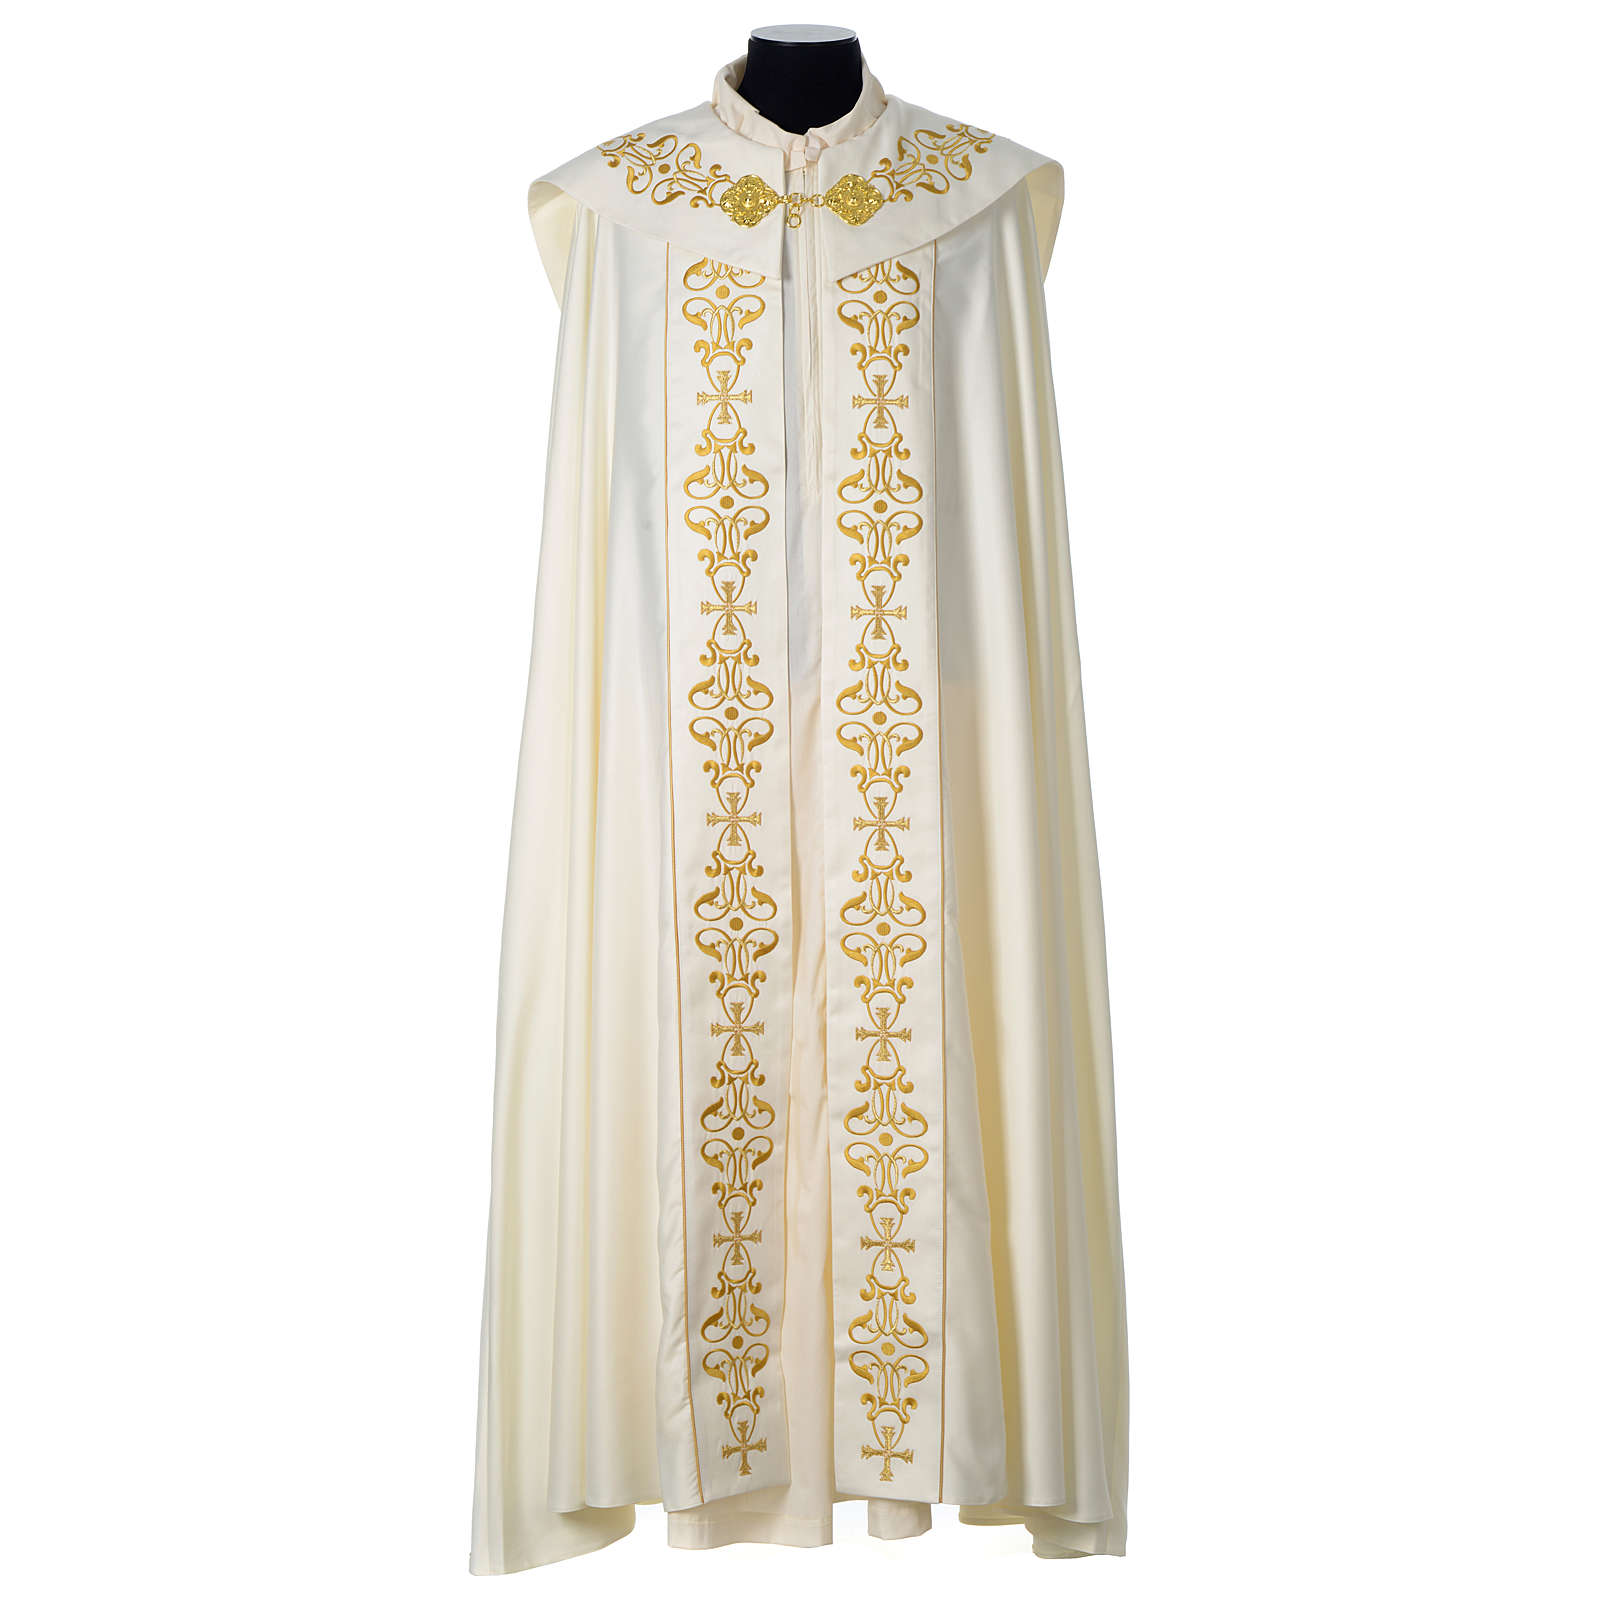 Cope with IHS embroidery and golden decoration on gallon, ivory 4